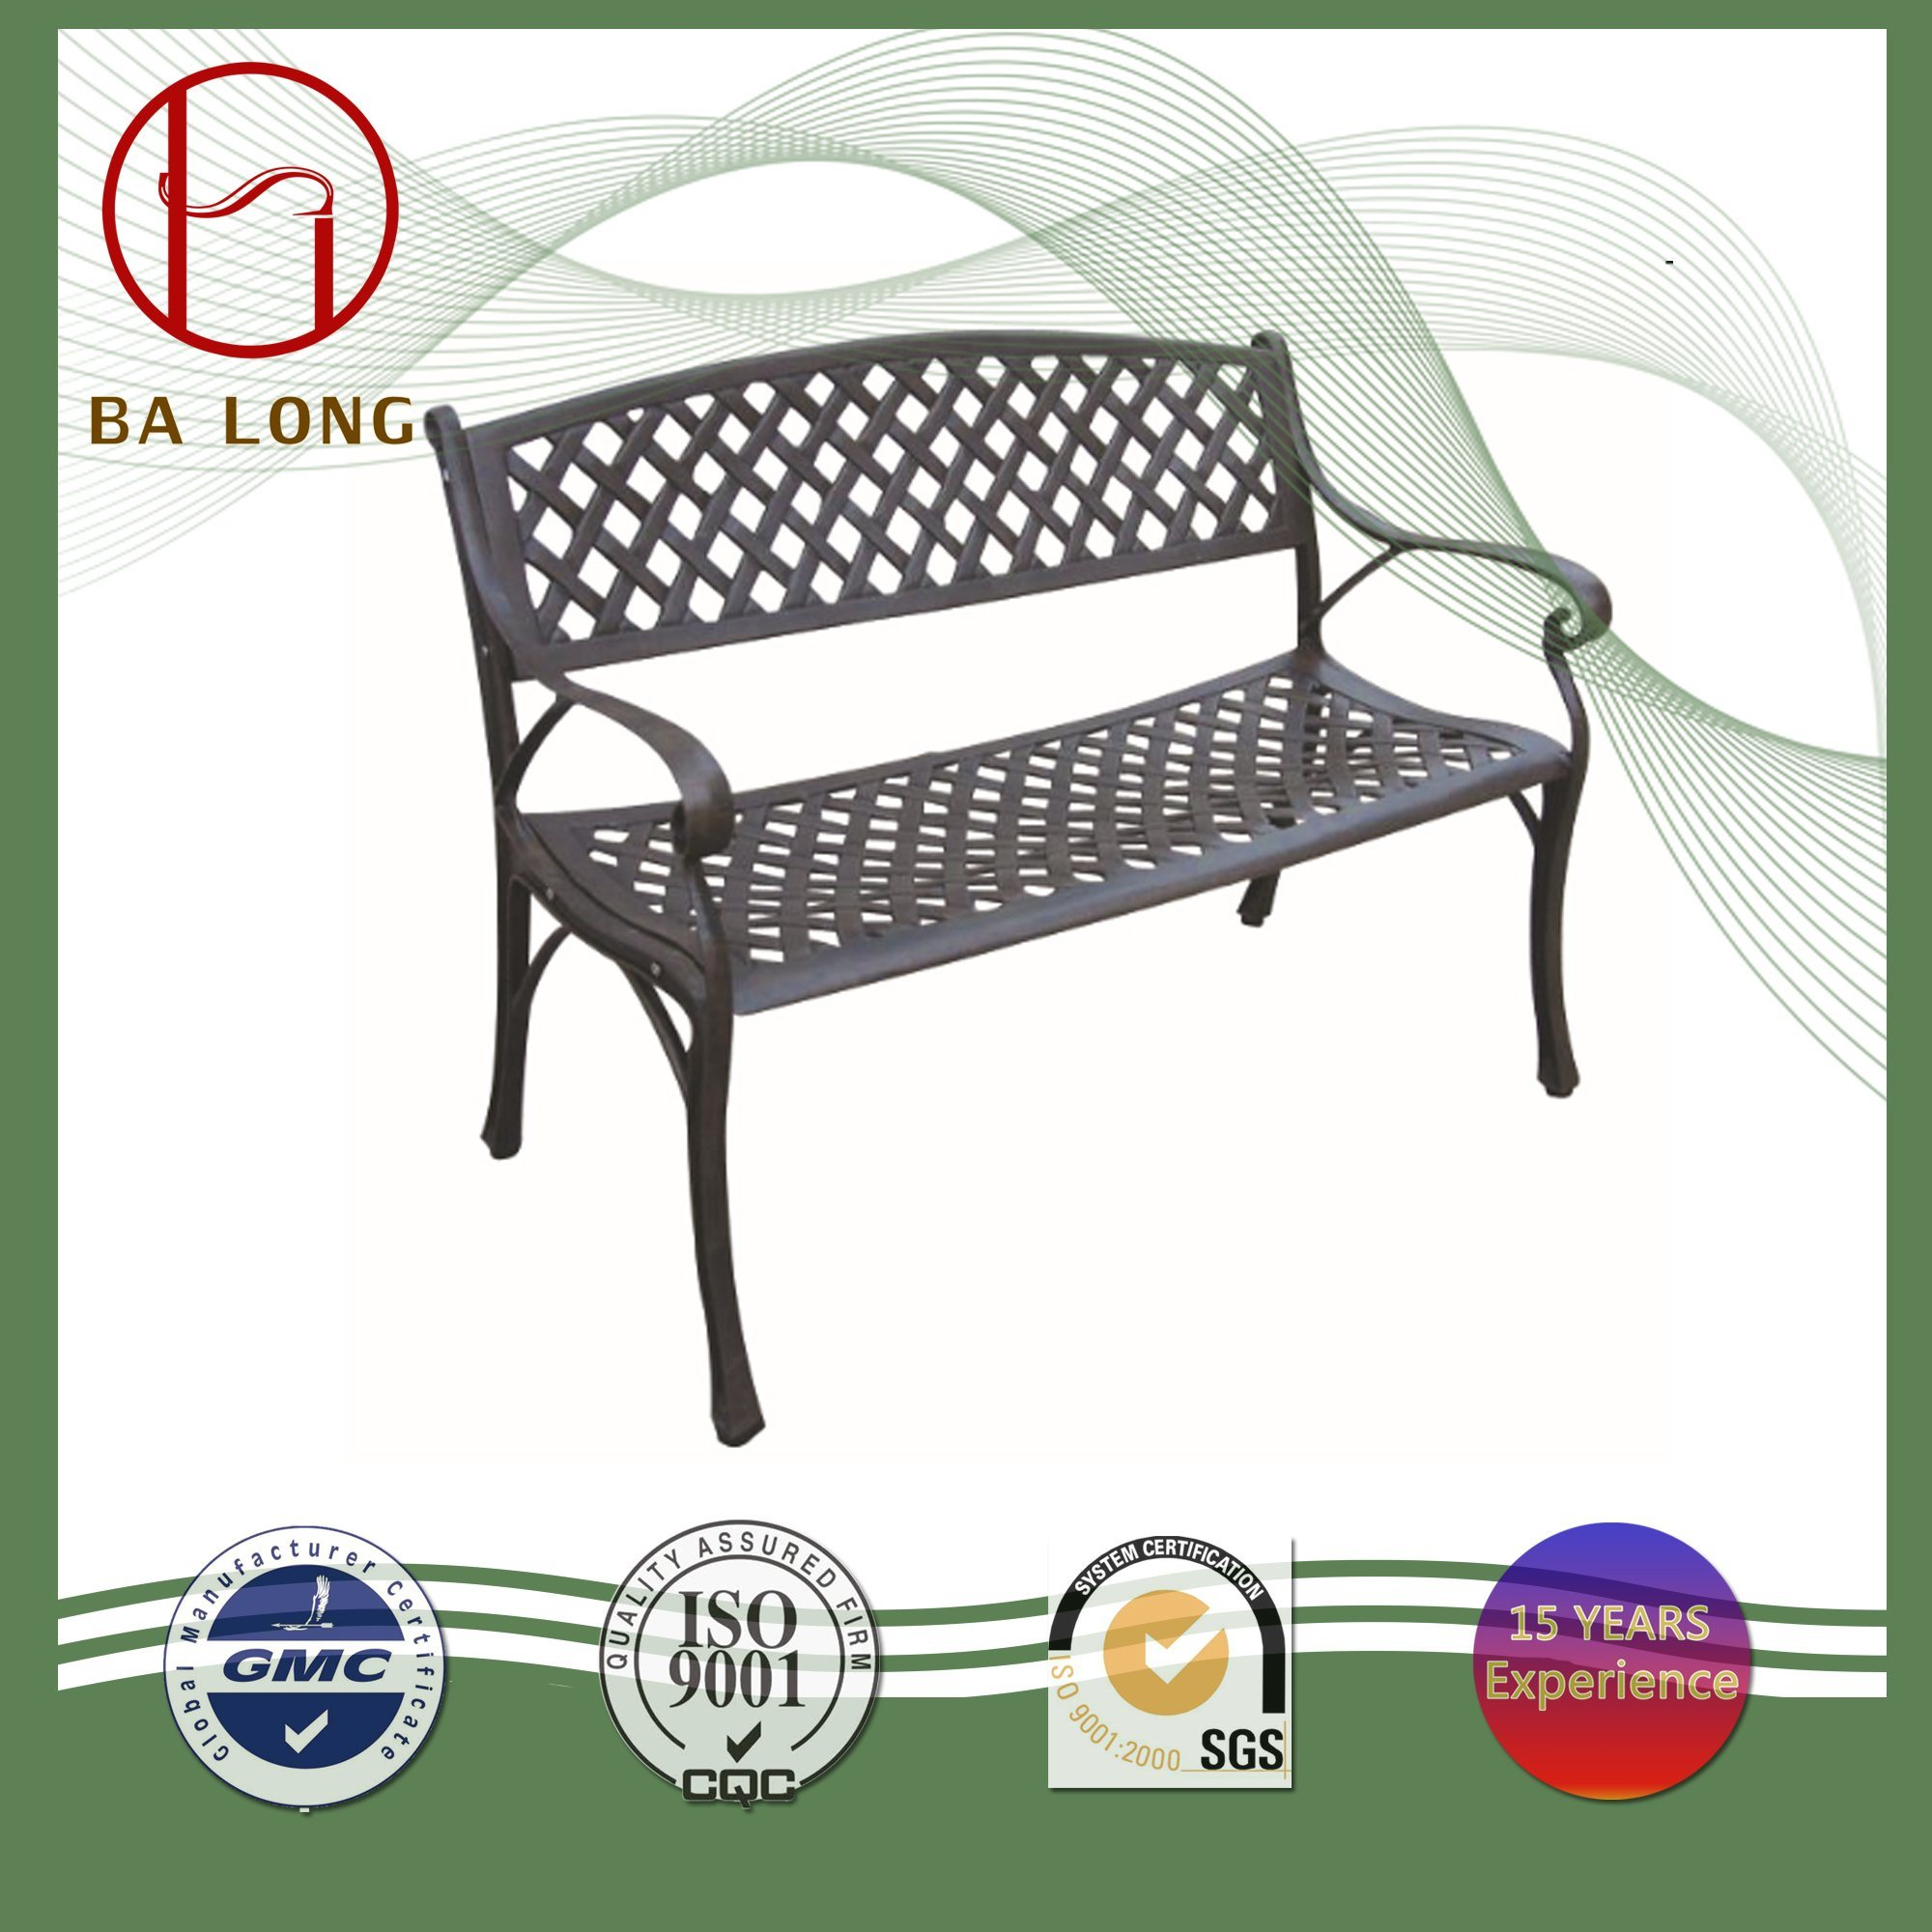 Brilliant Hot Item Leisure Cast Aluminium Metal Outdoor Patio Dining Garden Furniture Chair Bench Pabps2019 Chair Design Images Pabps2019Com